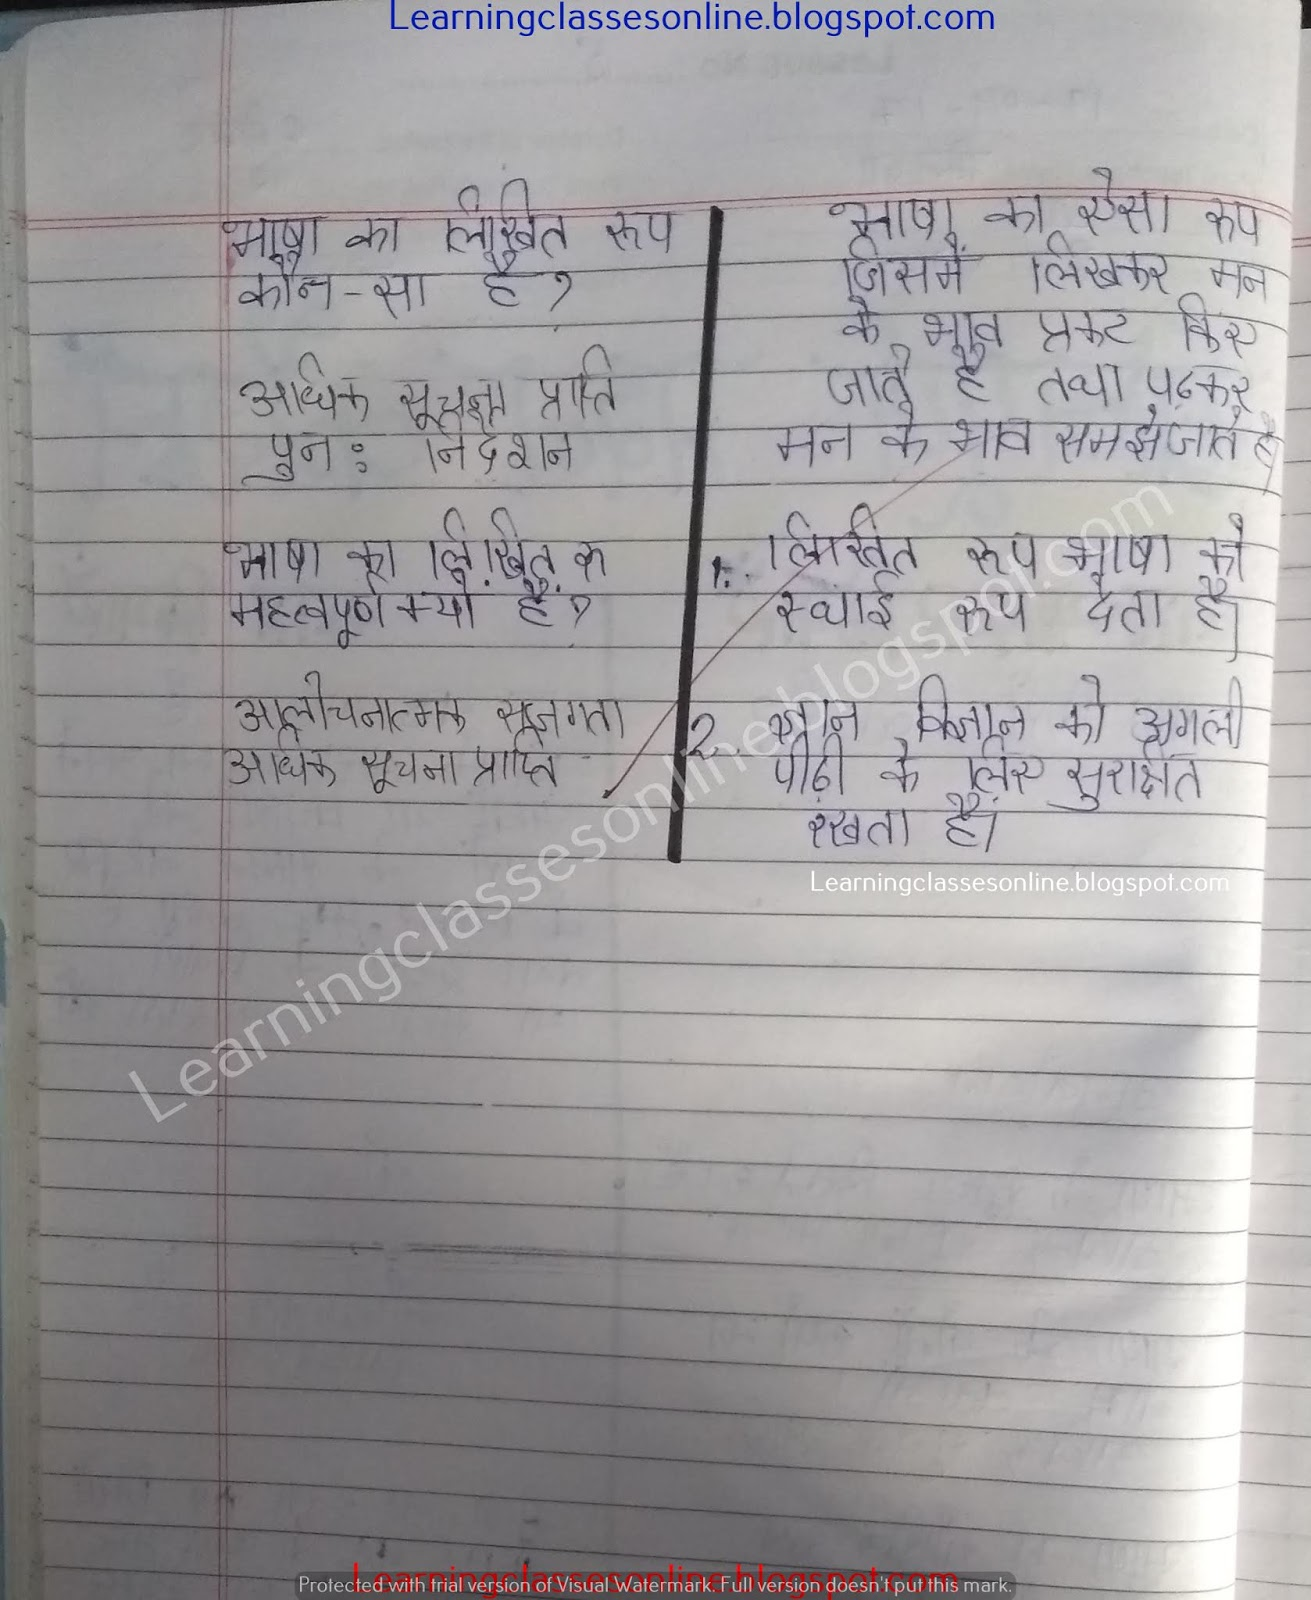 Hindi grammar lesson plan on Bhasha, How to teach hindi in middle school